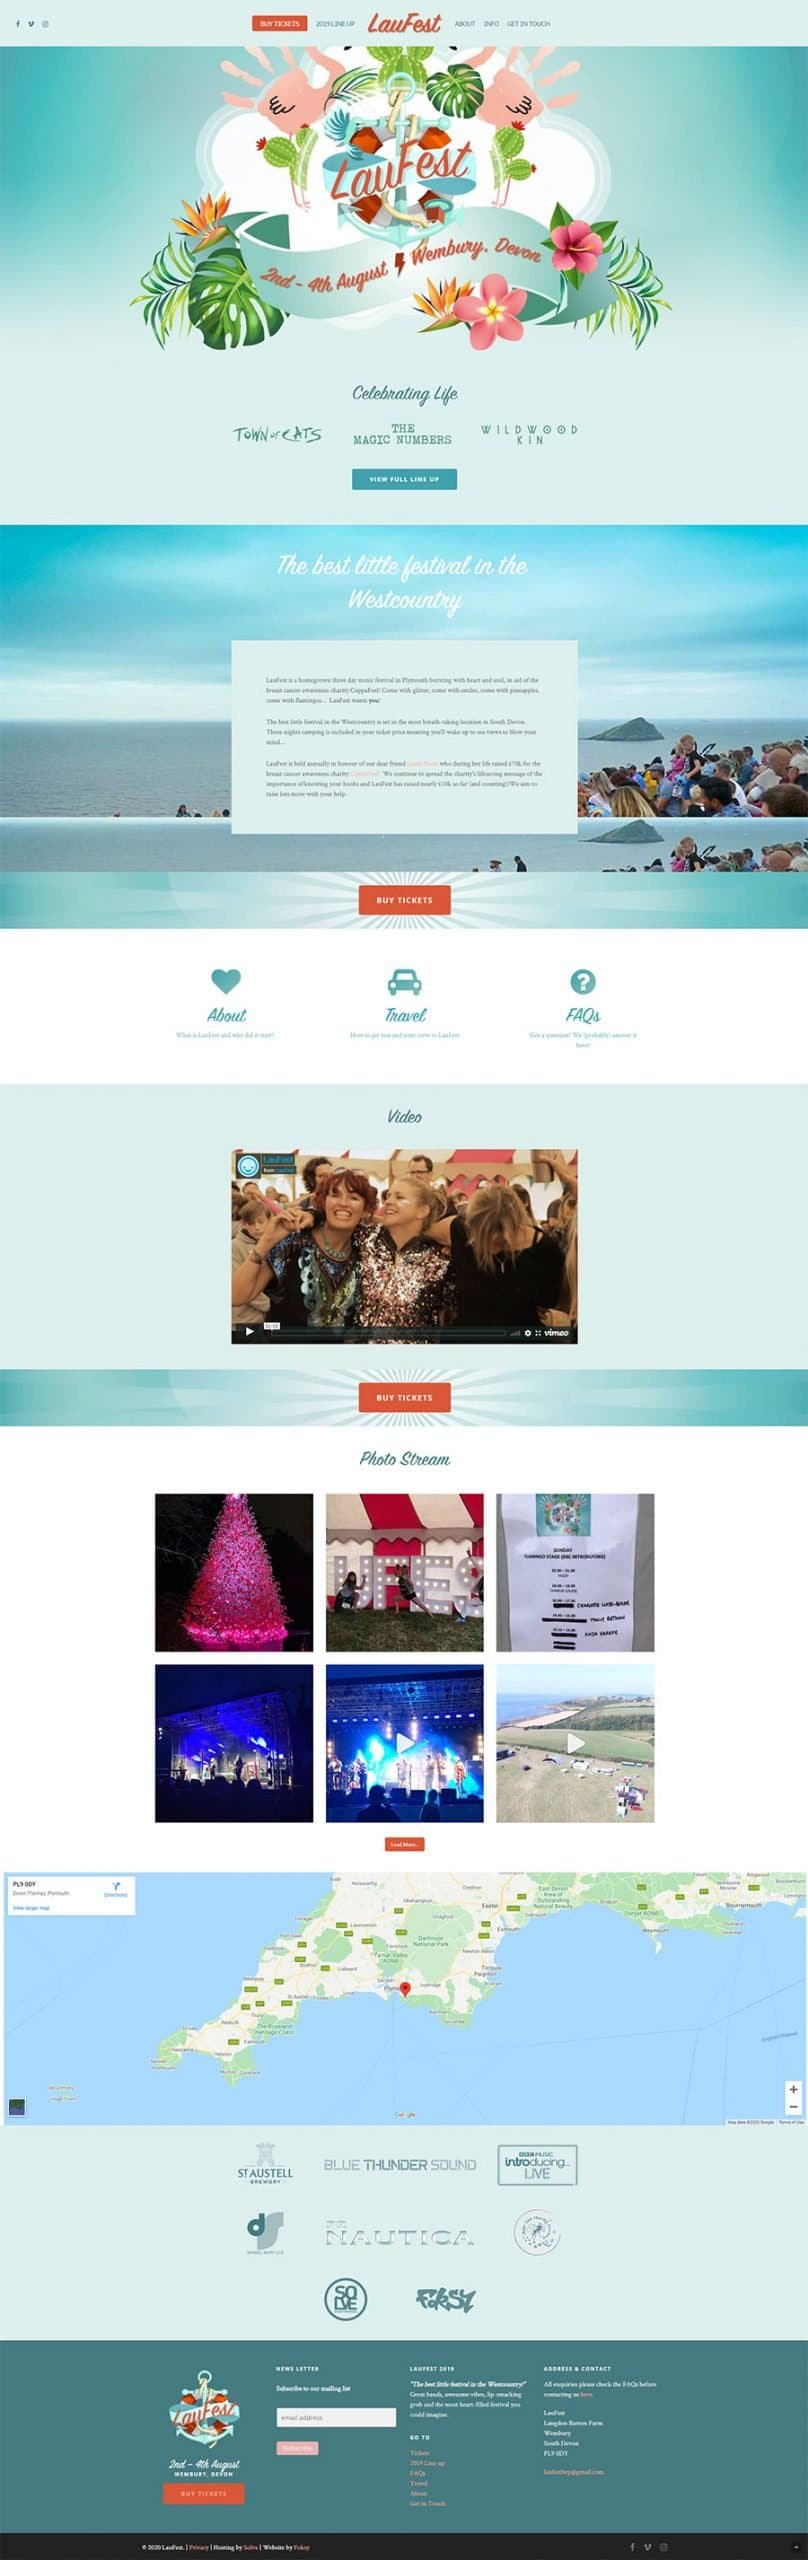 Layout design of the Laufest Charity website